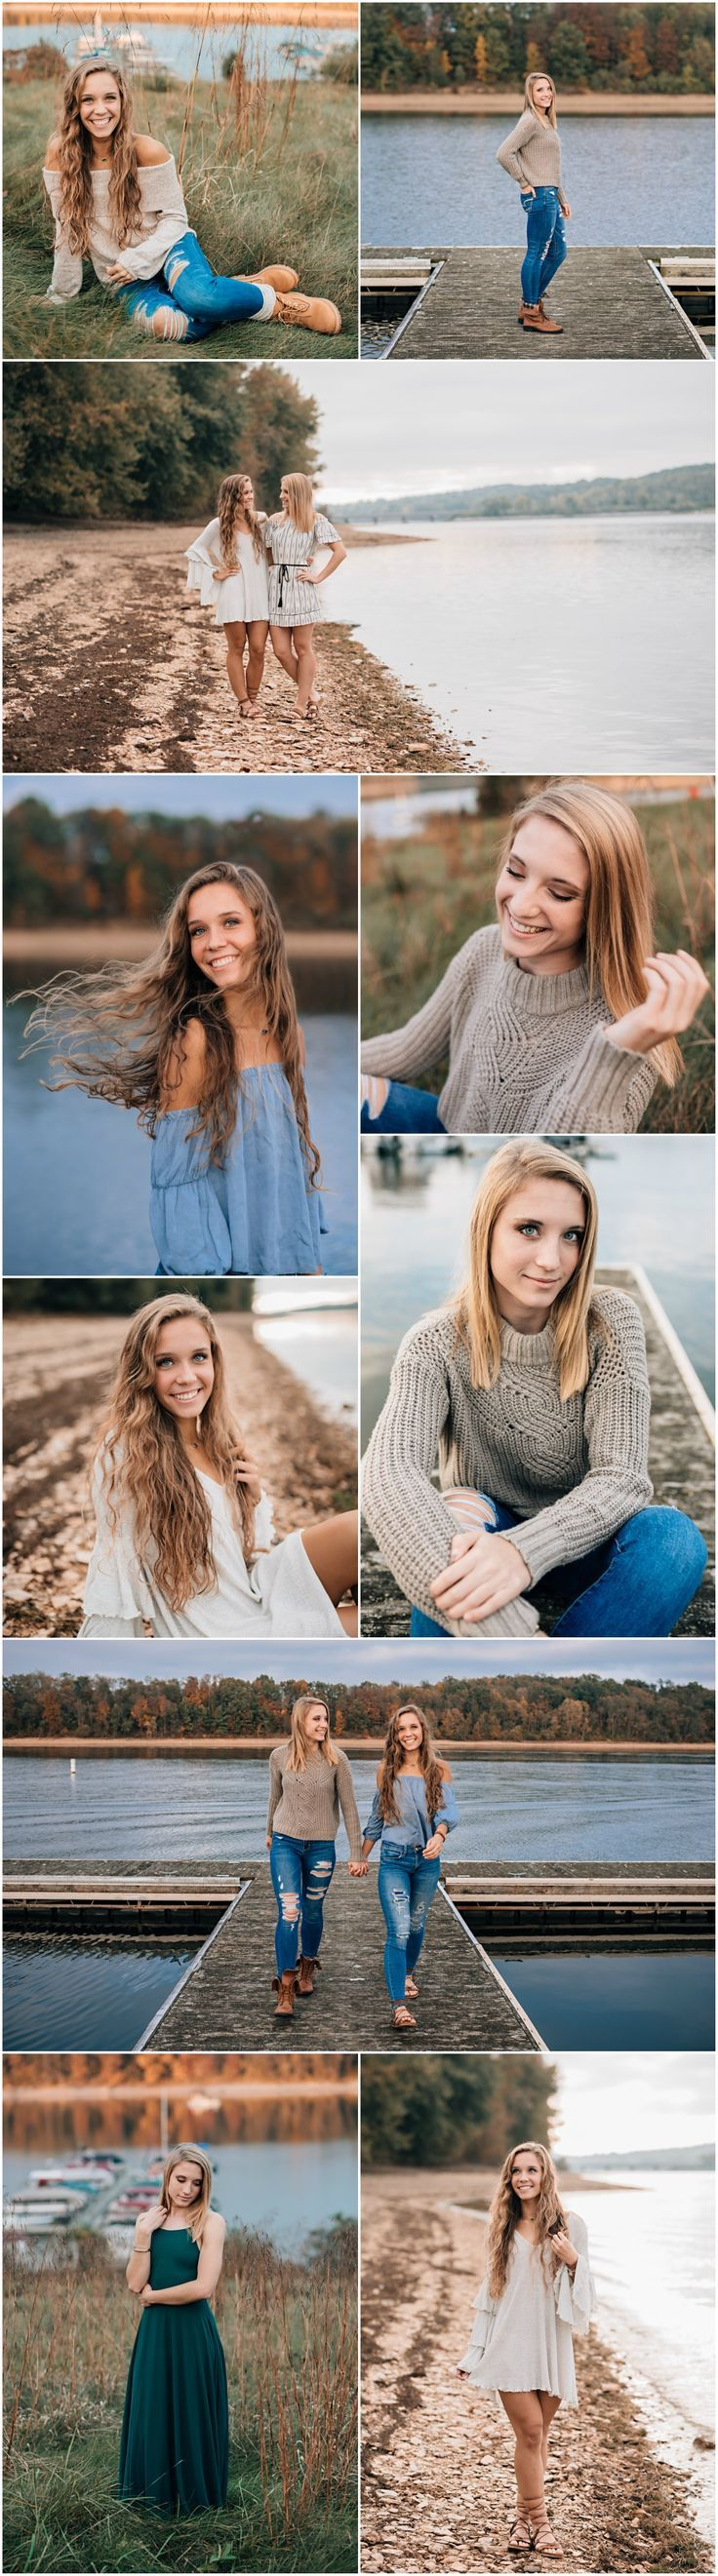 fall lake senior pictures, fall senior portraits, fall senior session, senior picture inspo, inspiration, maryland senior portrait photographer, maryland senior portrait photography, class of 2018, union bridge, senior pictures, senior portraits, outfit inspiration, senior girl, senior, best friend senior pictures, senior picture ideas, naturally vivid photography, lake senior pictures, field senior pictures, westminster senior portrait photographer, codorus state park, twin senior pictures